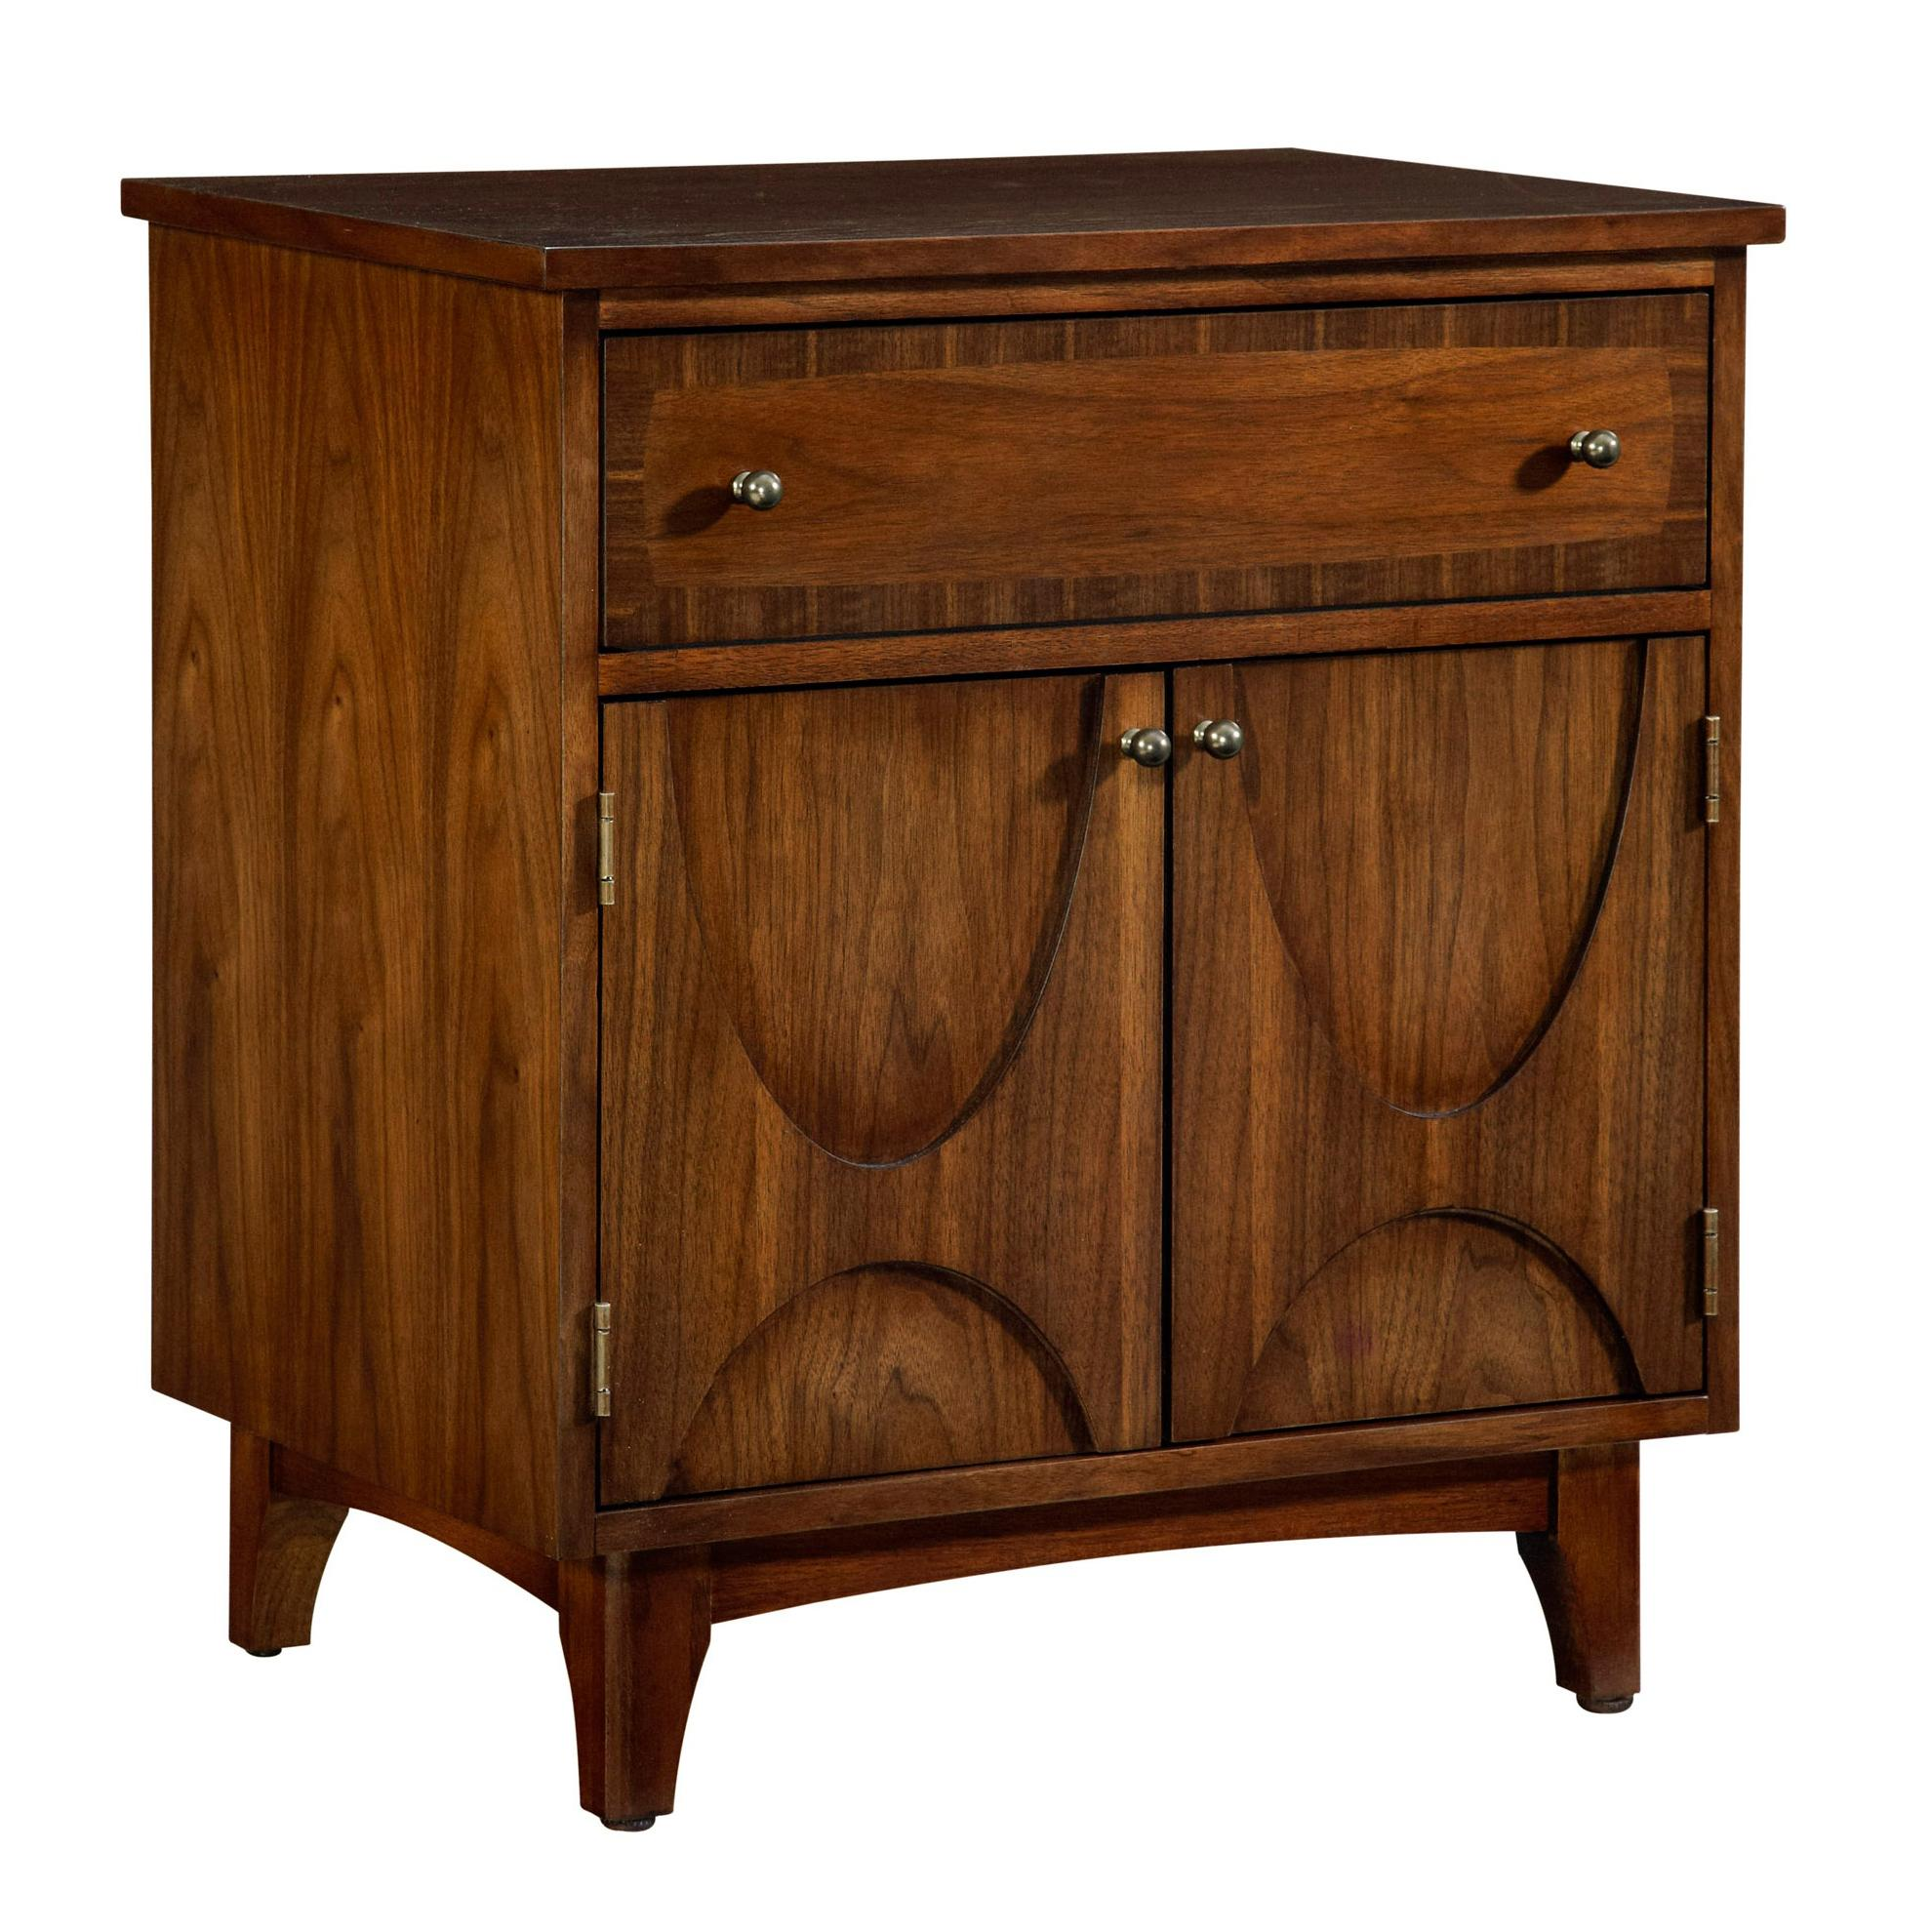 Broyhill Furniture Mardella Door Nightstand - Item Number: 4277-294